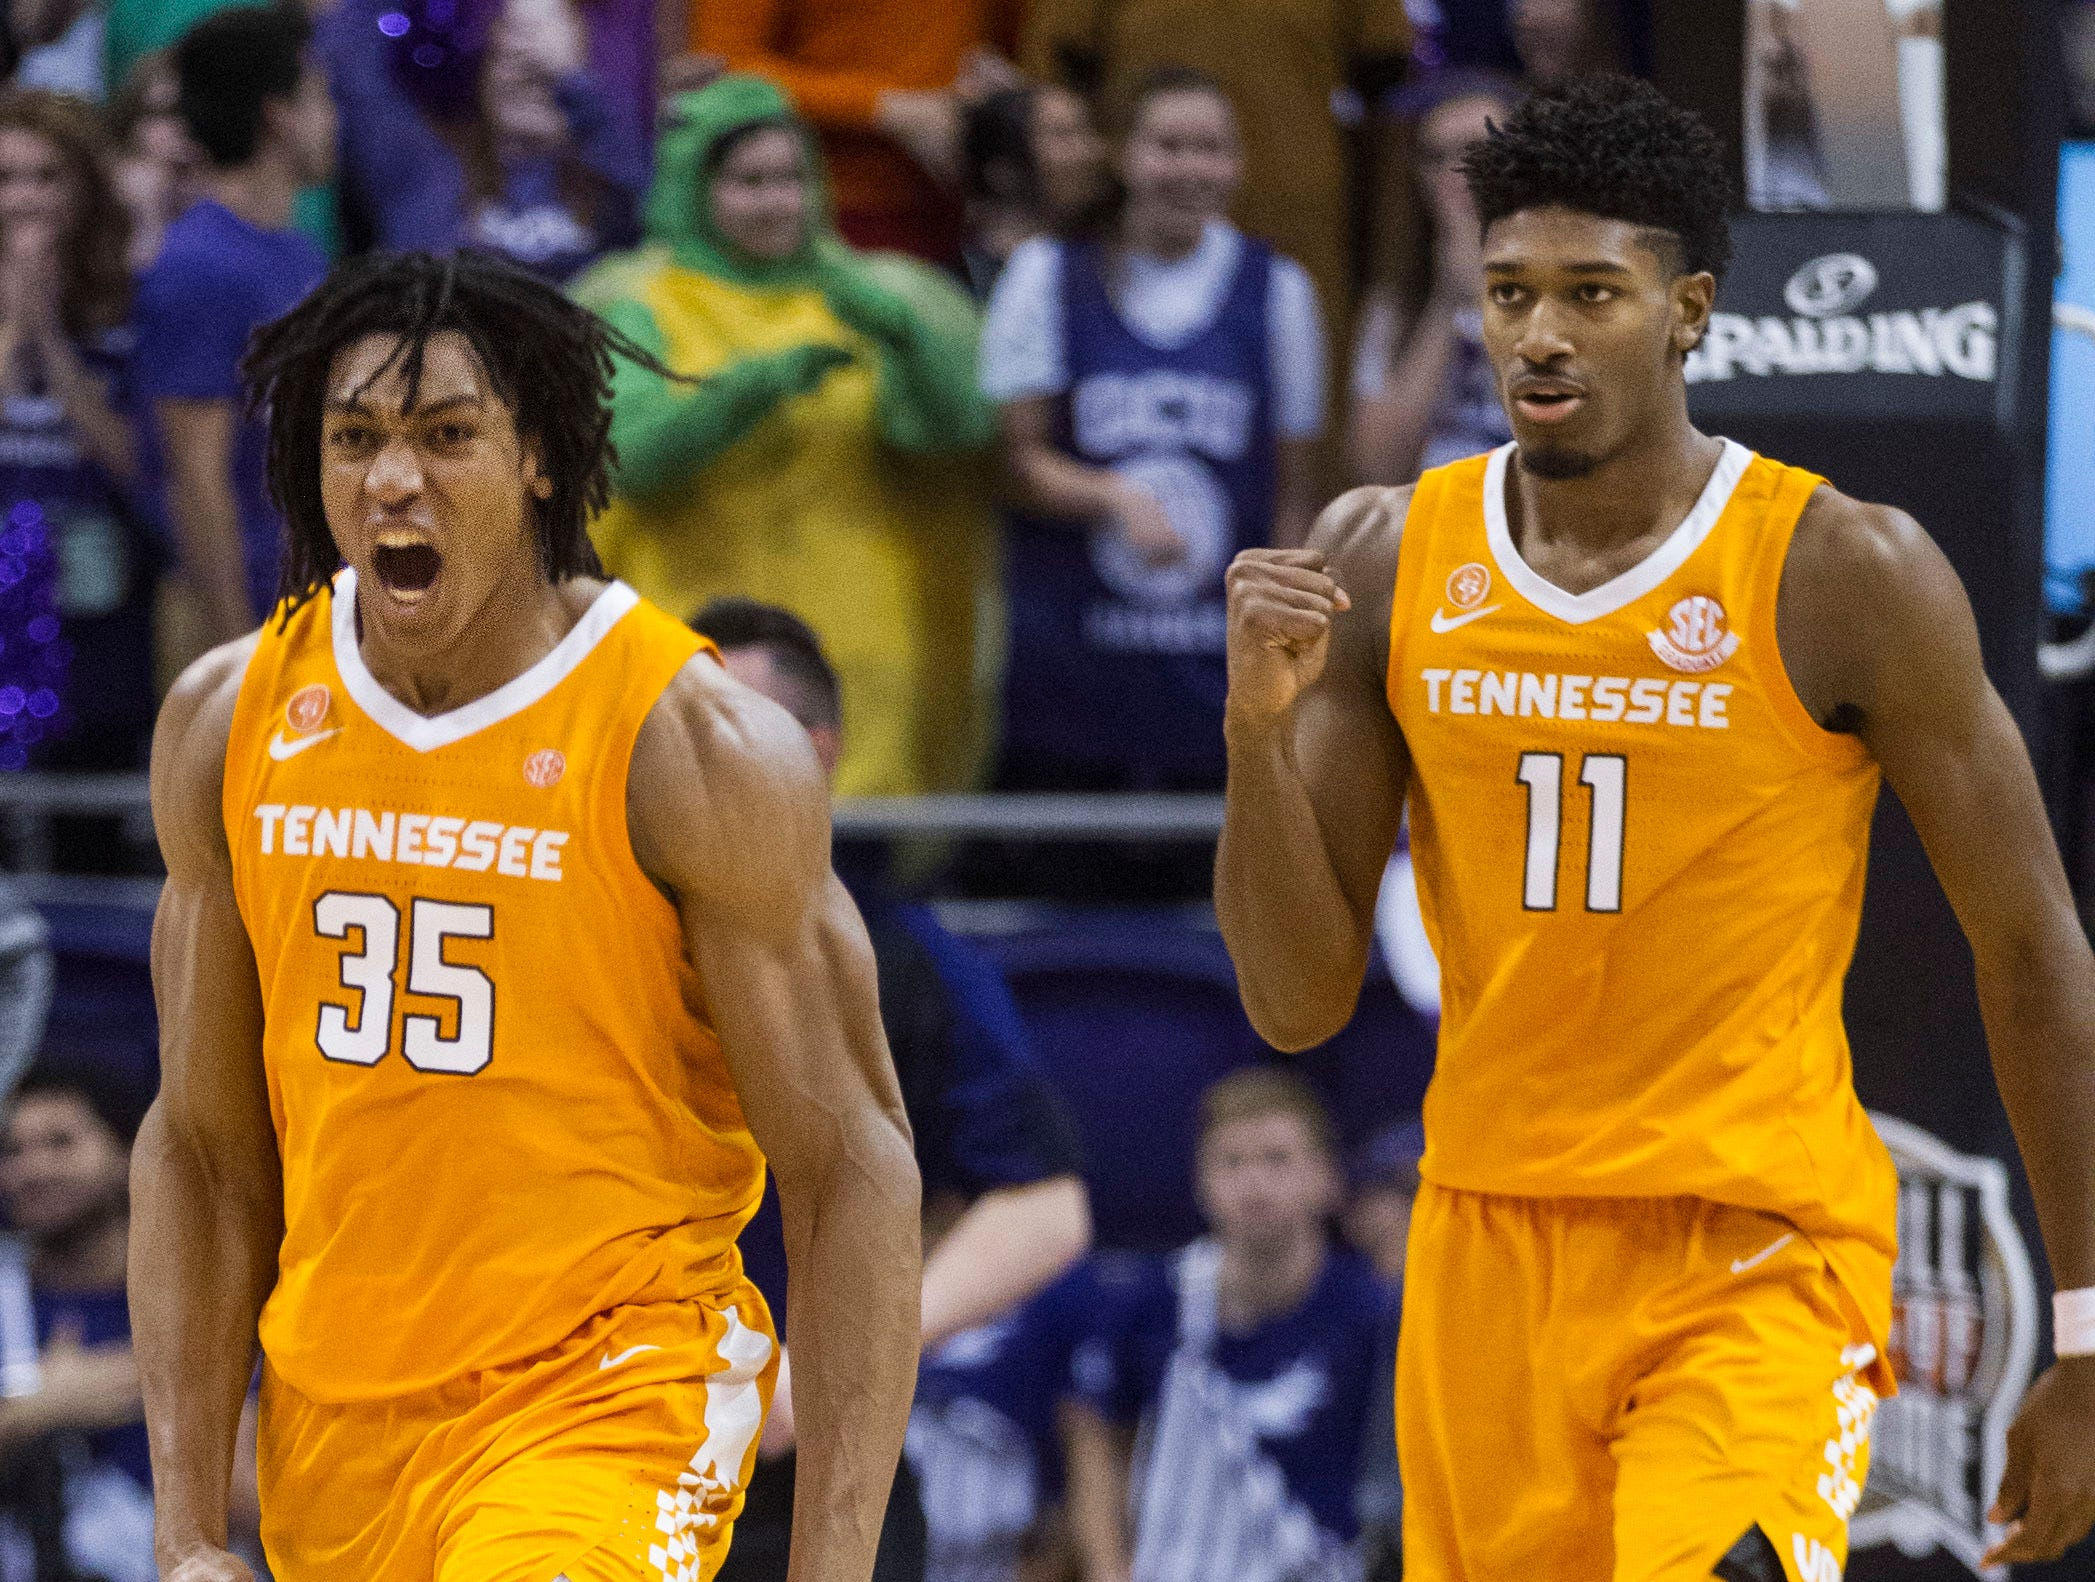 Tennessee's Yves Pons (35) and Kyle Alexander (11) celebrate their win over Gonzaga in an NCAA college basketball game Sunday, Dec. 9, 2018, in Phoenix.